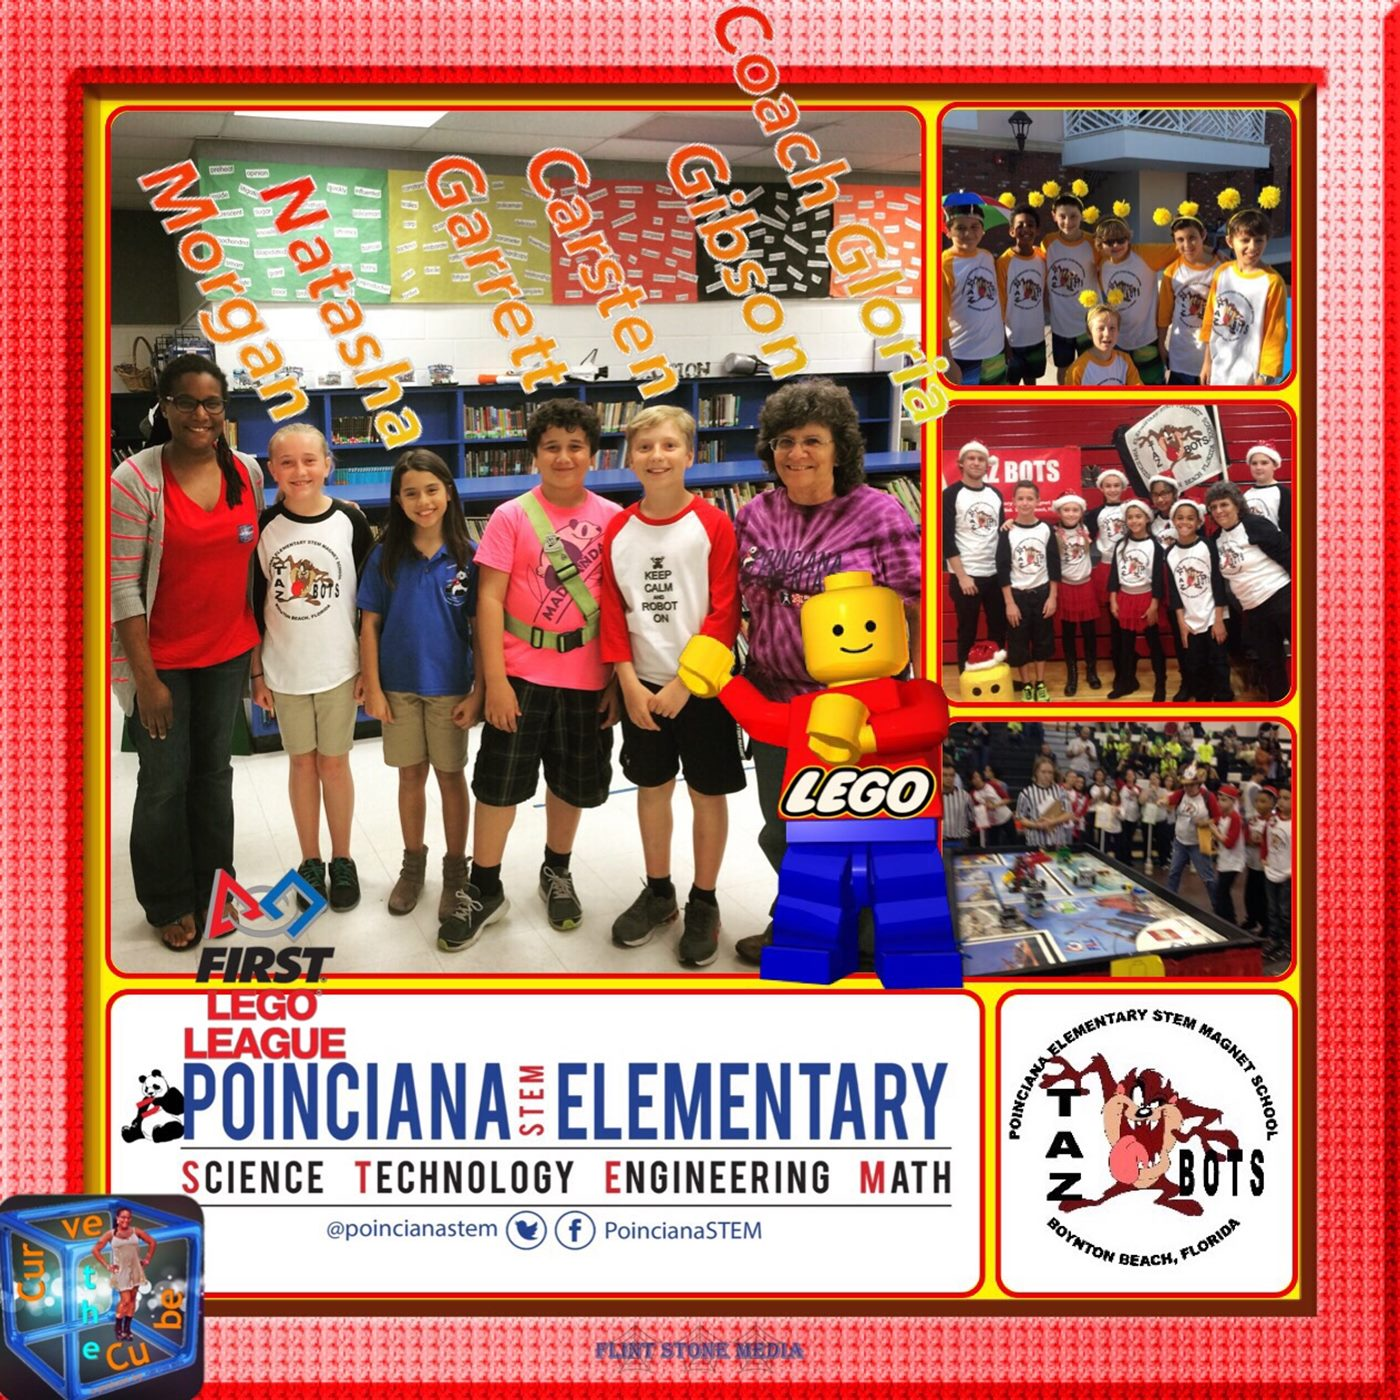 #70 – CTC KIDS – Poinciana Elementary's Taz Bots (Lego League Kids) - 2016-03-29